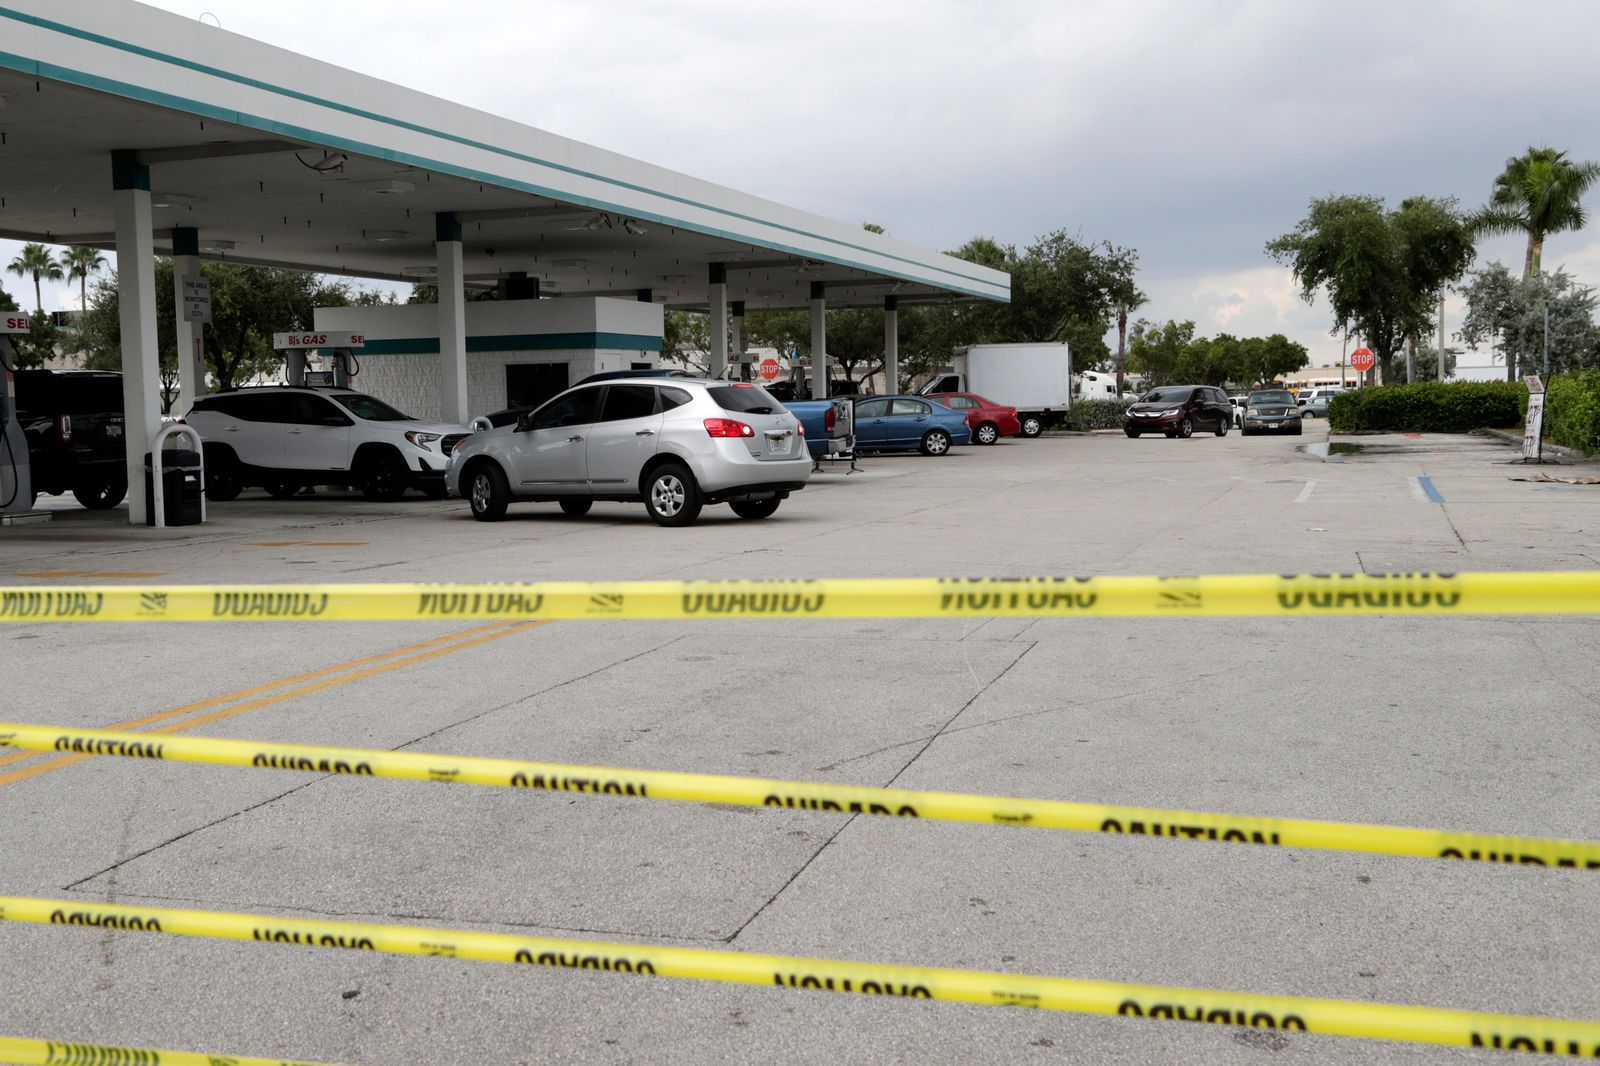 Tape blocks an entrance at BJ's Wholesale Club to control traffic flow as motorists line up for fuel in preparation for Hurricane Dorian, Thursday, Aug. 29, 2019, in Hialeah, Fla. Hurricane Dorian is heading towards Florida for a possible direct hit on the state over Labor Day. (AP Photo/Lynne Sladky)